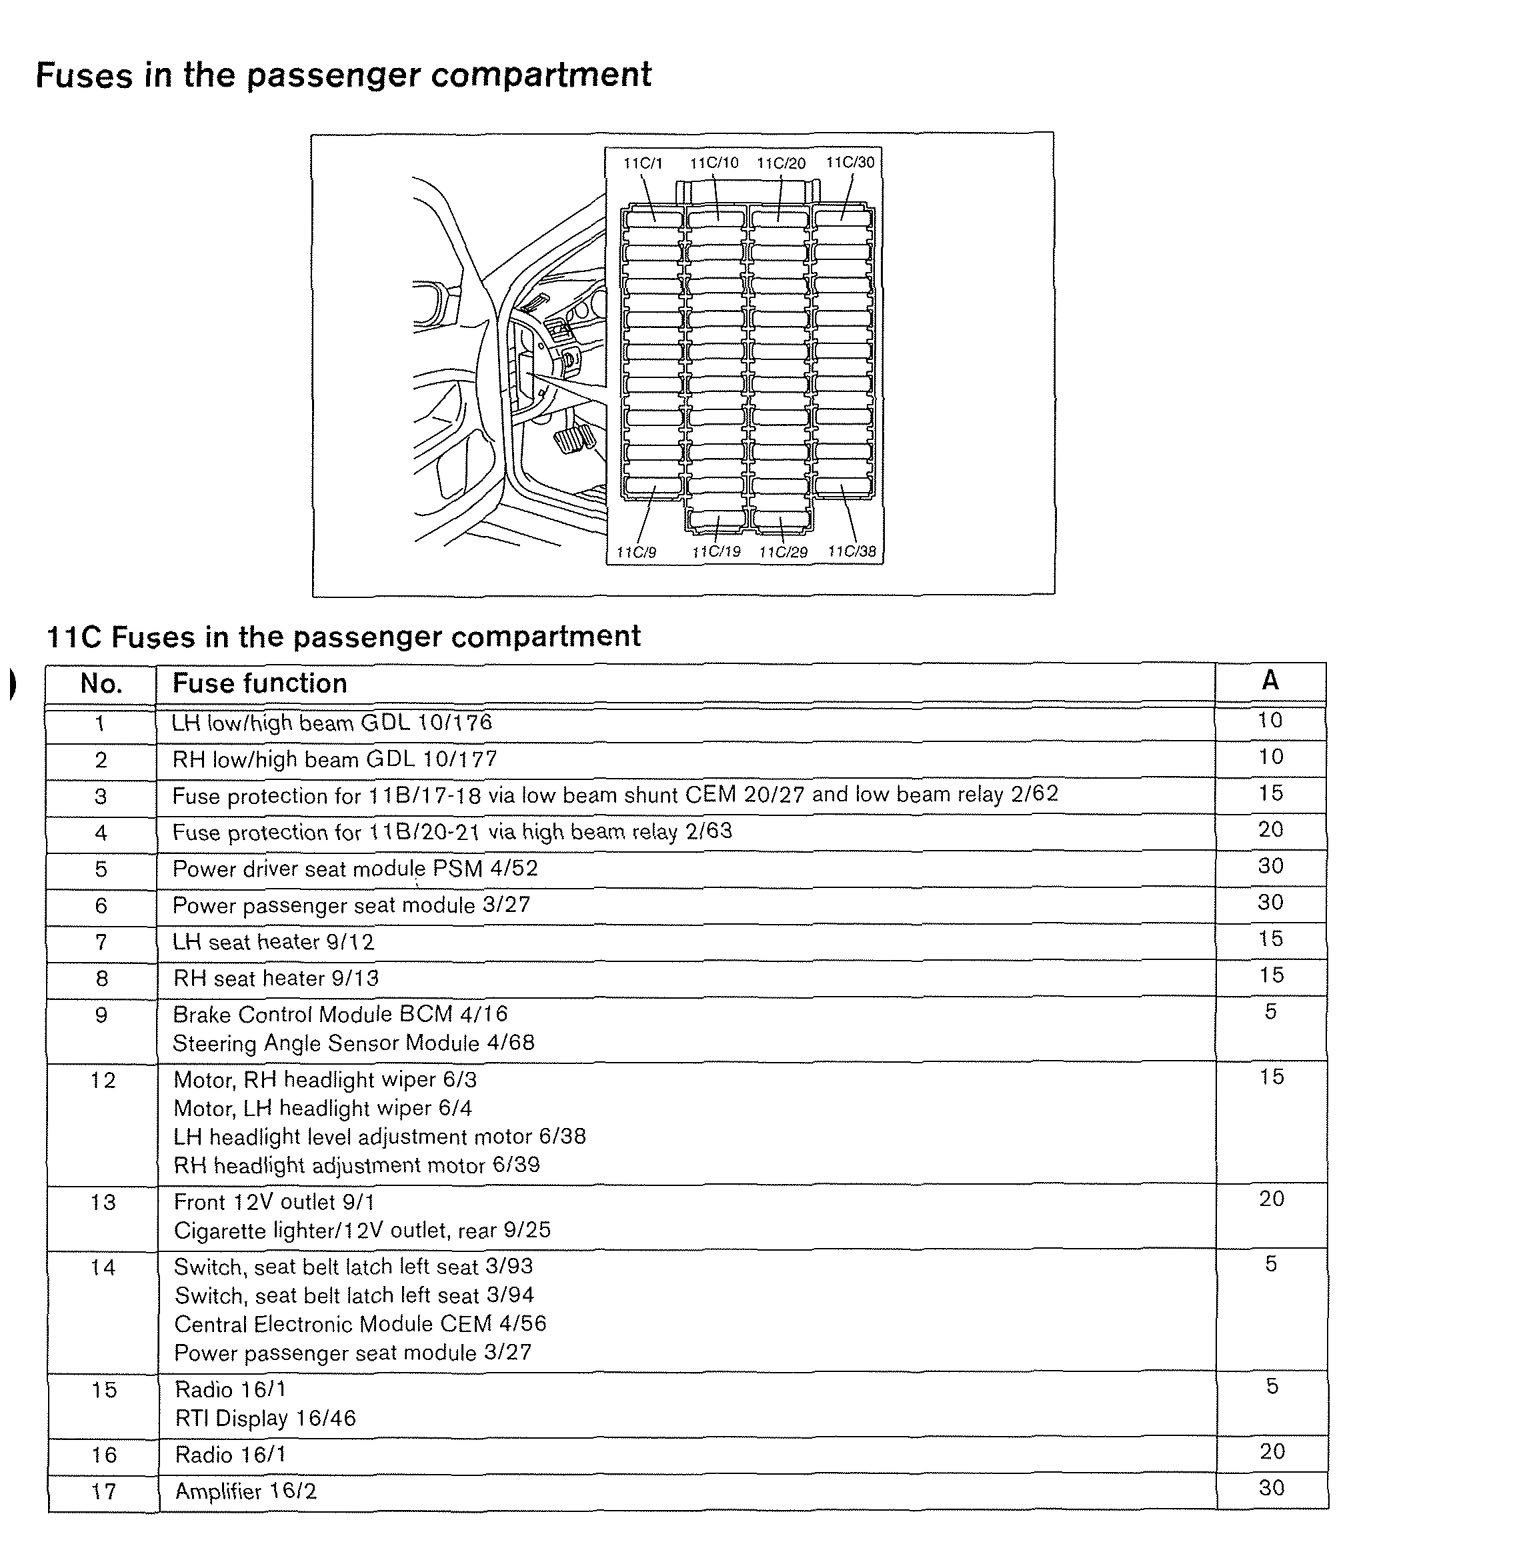 2002 volvo wiring diagrams volvo v70 (2002) - wiring diagrams - fuse panel - carknowledge #14